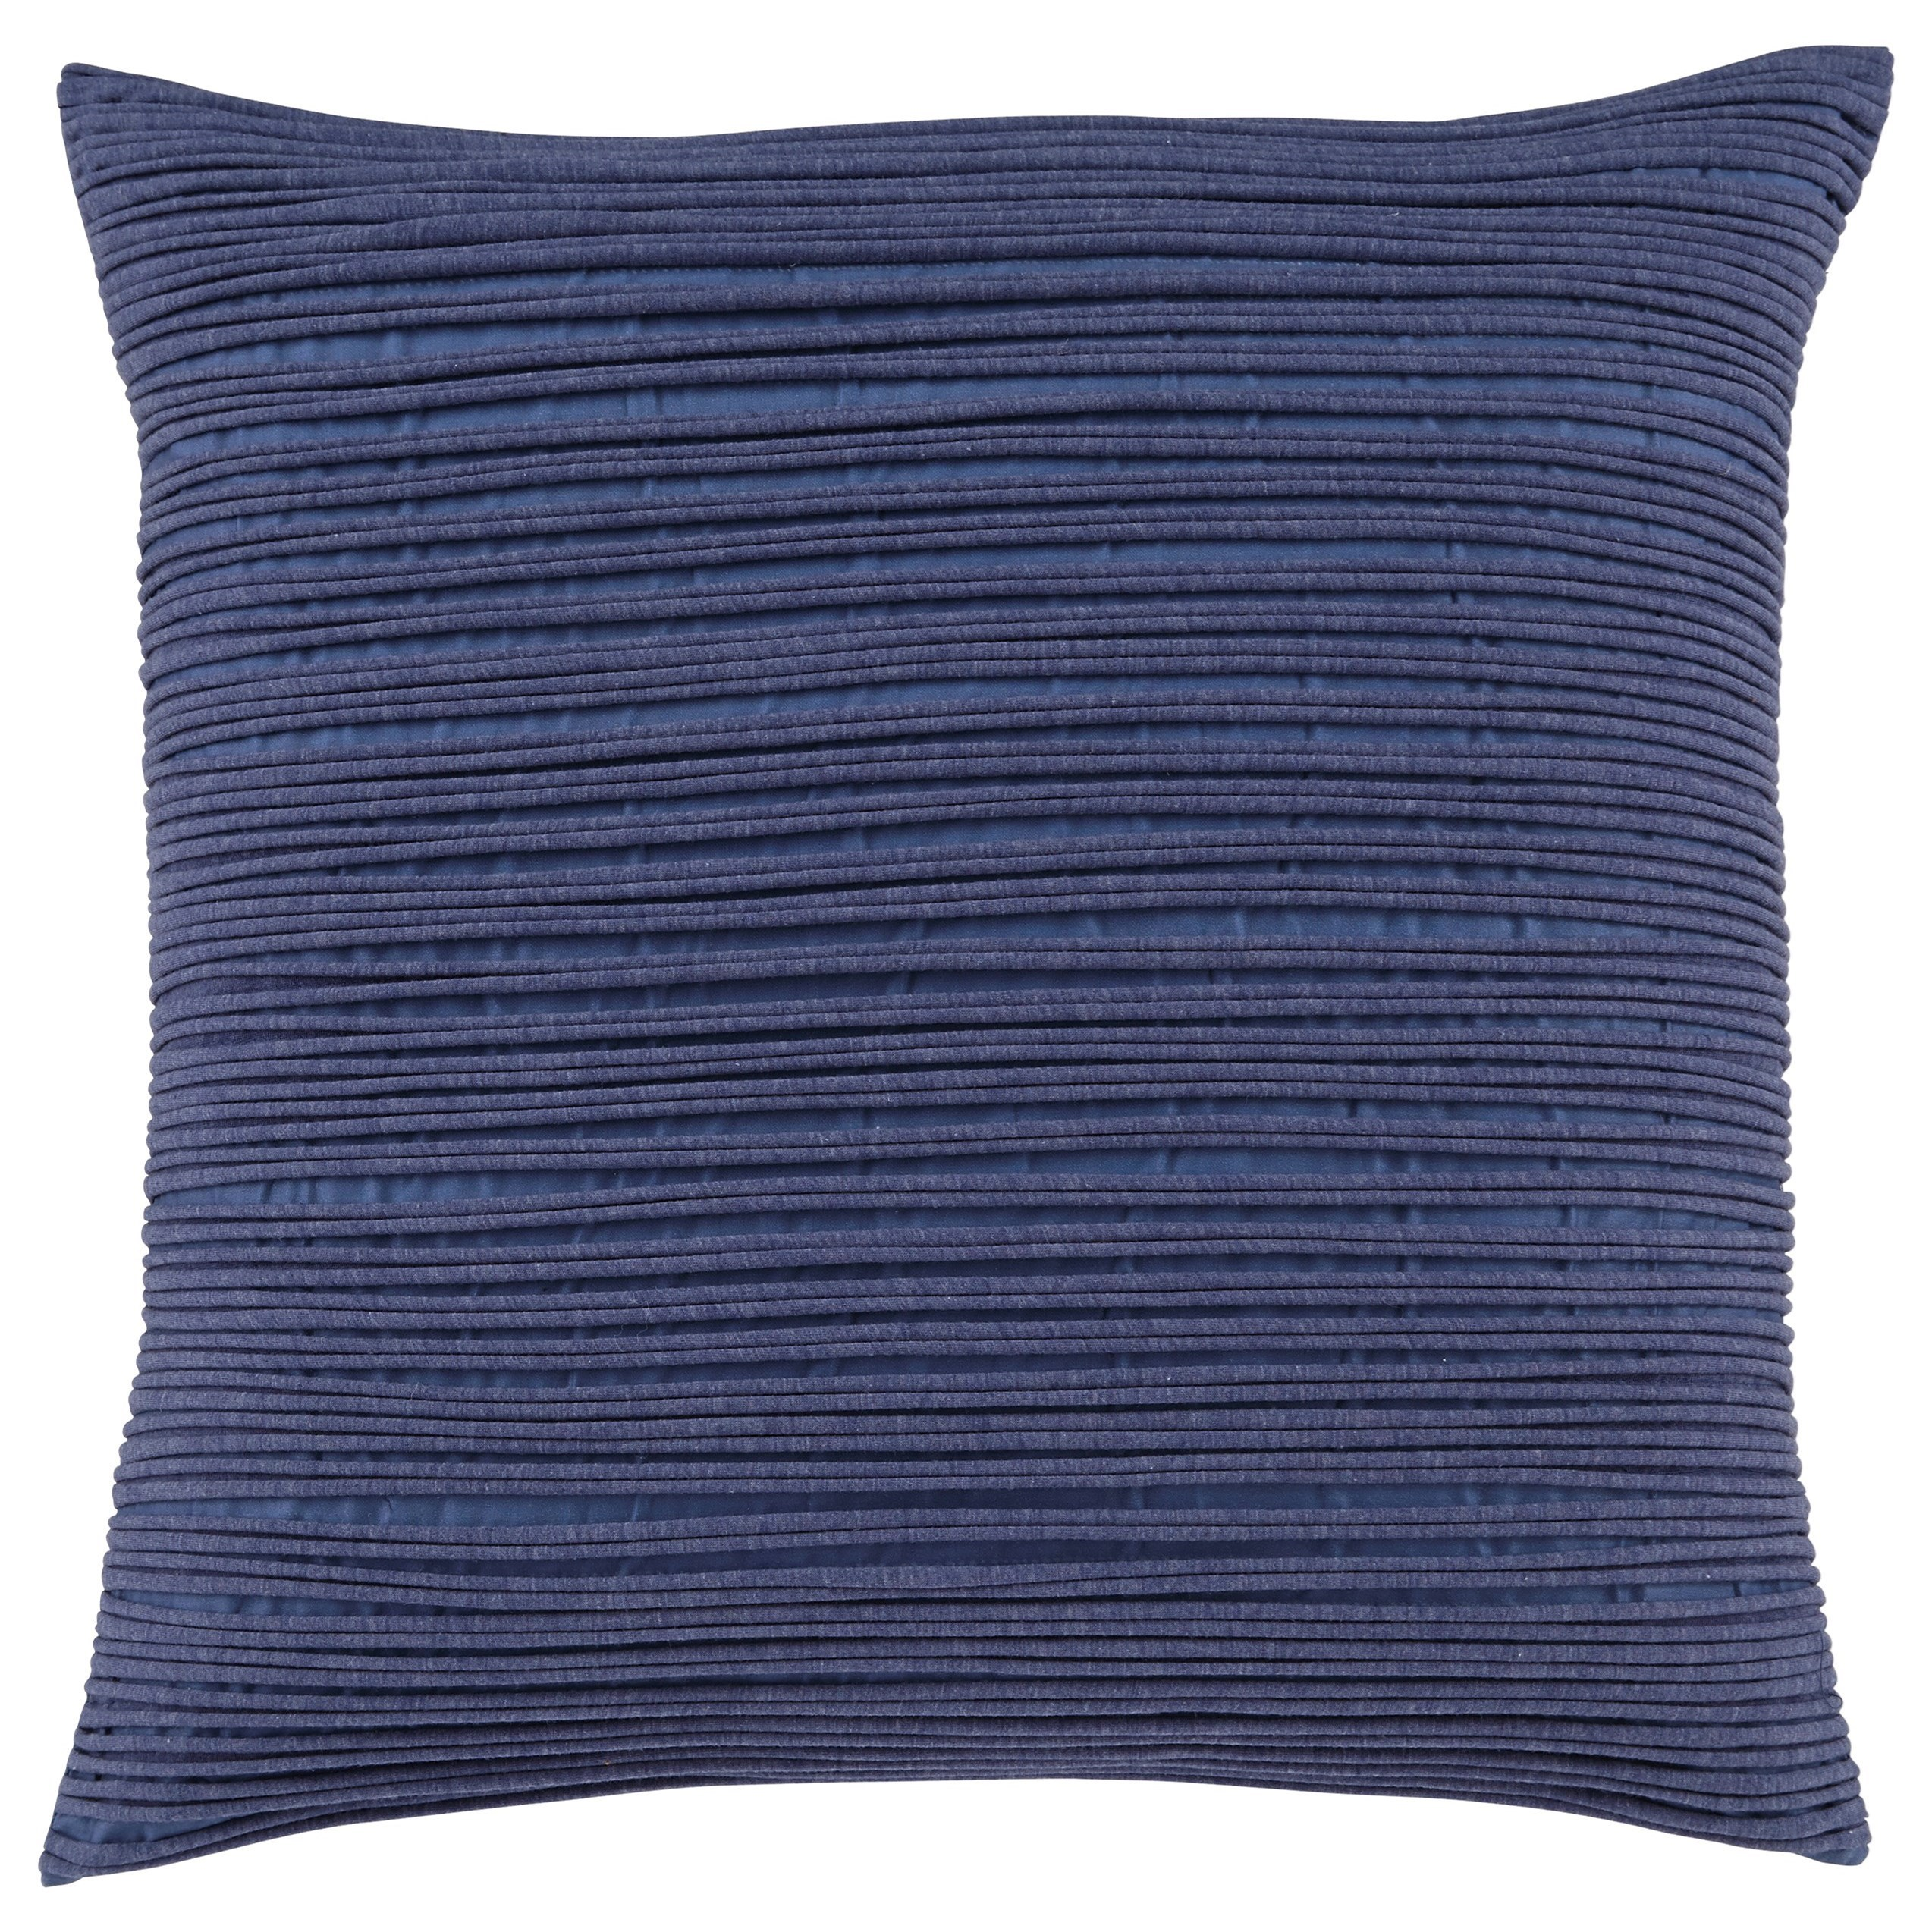 Signature Design by Ashley Pillows Lestyn Blue Pillow Cover - Item Number: A1000719P